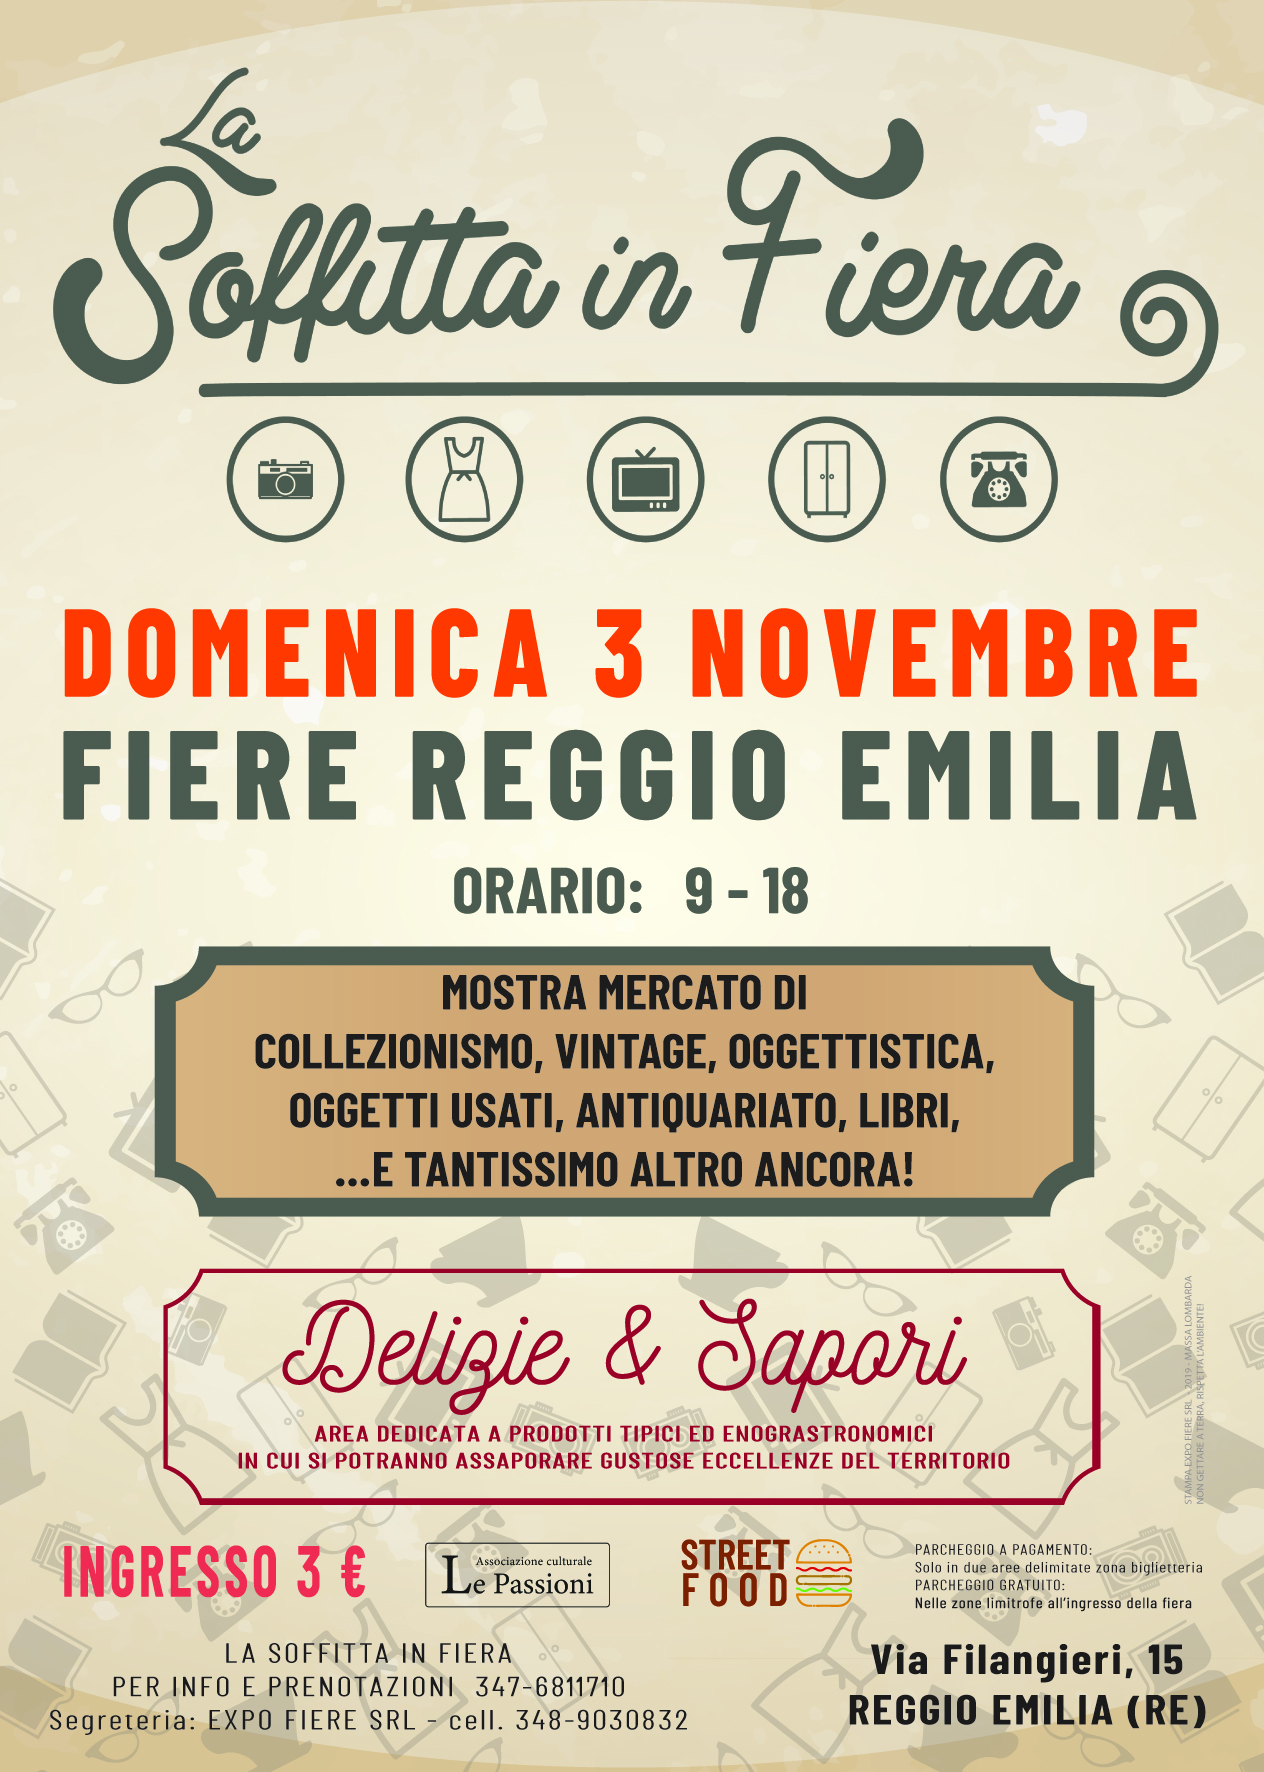 La Soffitta in Fiera